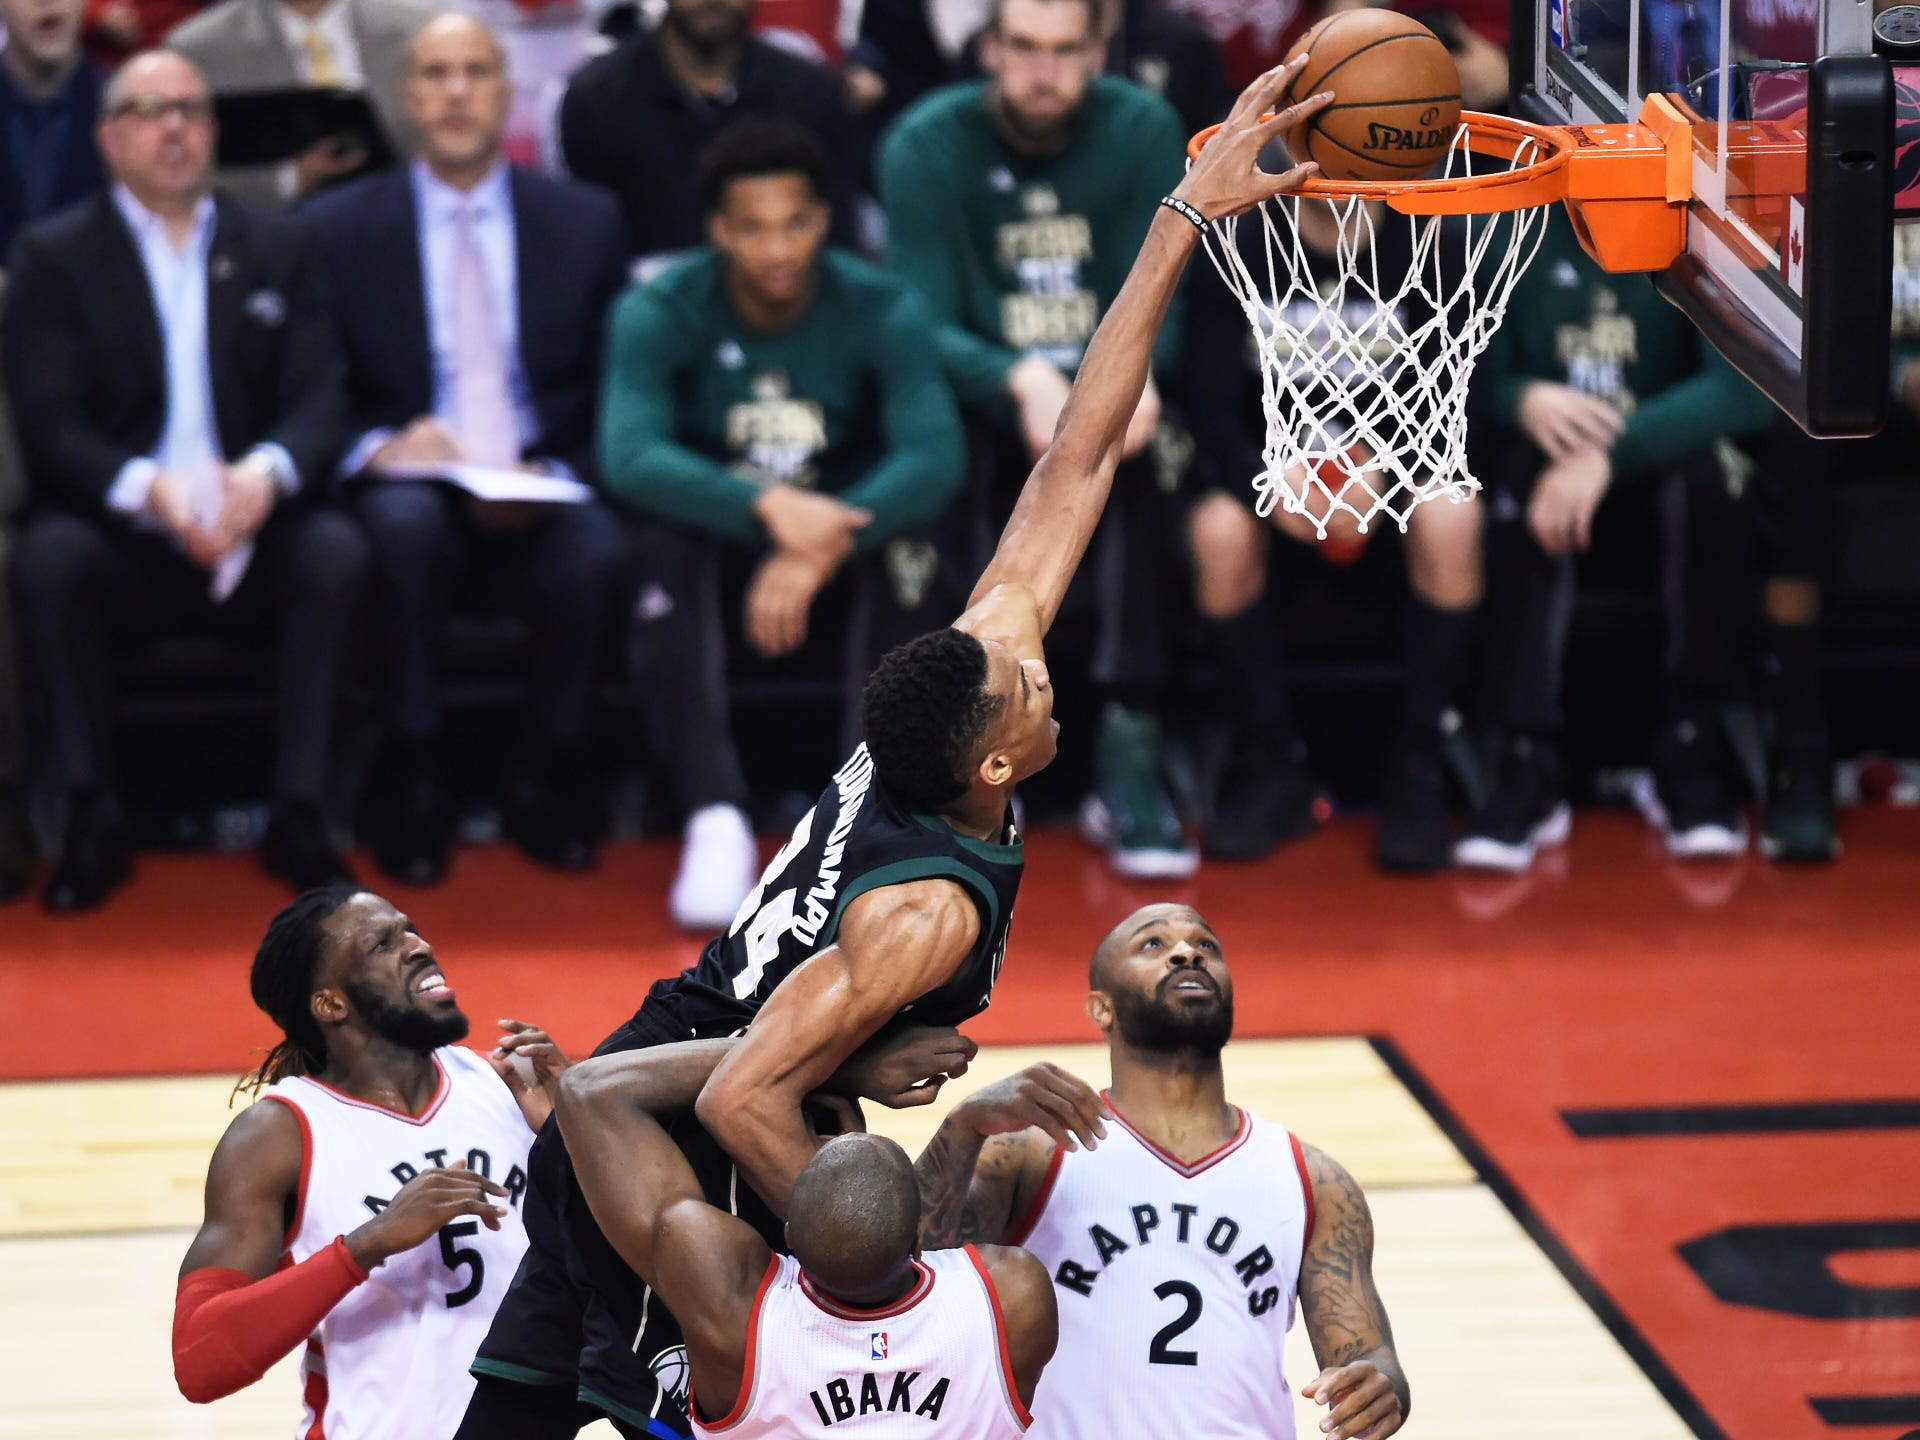 Milwaukee Bucks forward Giannis Antetokounmpo (34) dunks over Toronto Raptors forward DeMarre Carroll (5), forward Serge Ibaka (9) and forward PJ Tucker (2) during first-half NBA playoff basketball game action in Toronto on Saturday, April 15, 2017.